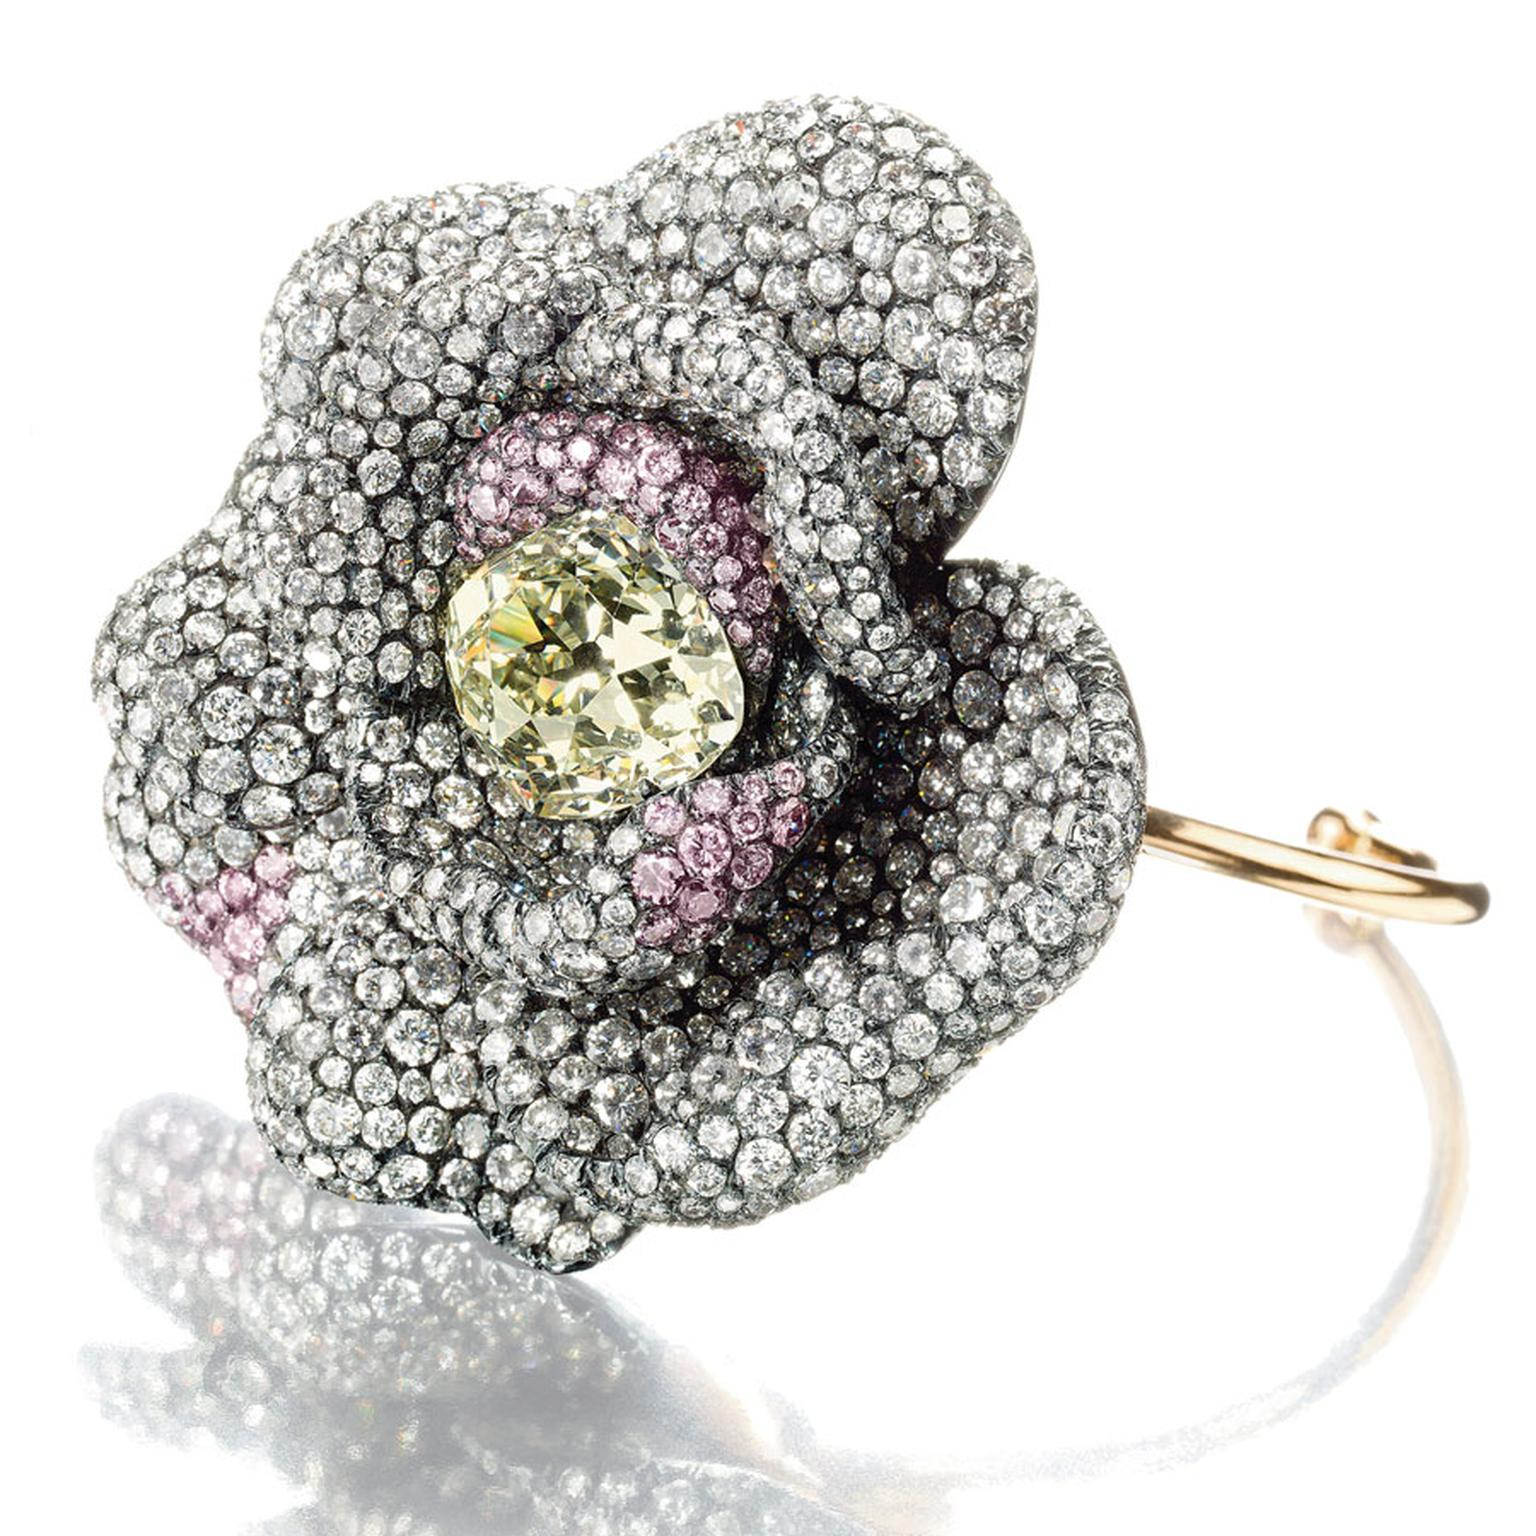 Christies Lily Safra. A-diamond-and-pink-diamond-Camellia-flower-bracelet